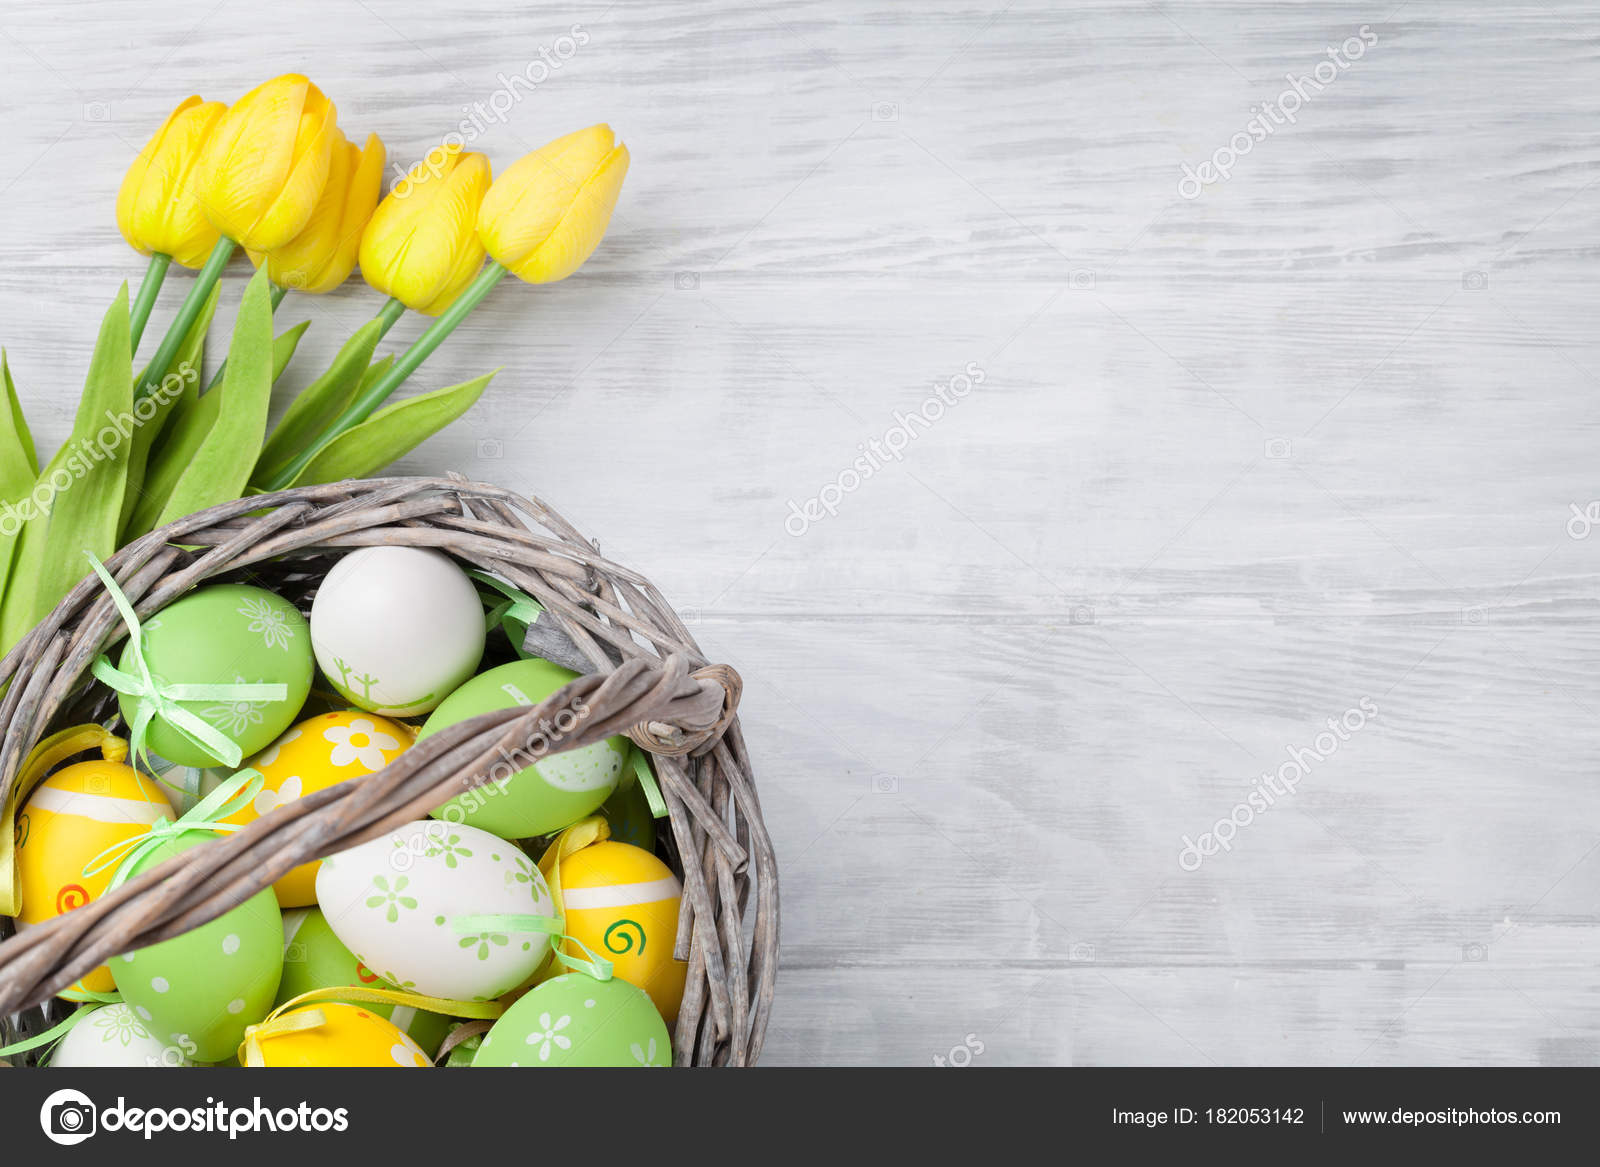 Easter Eggs Tulips Wooden Table Yellow Green Top View